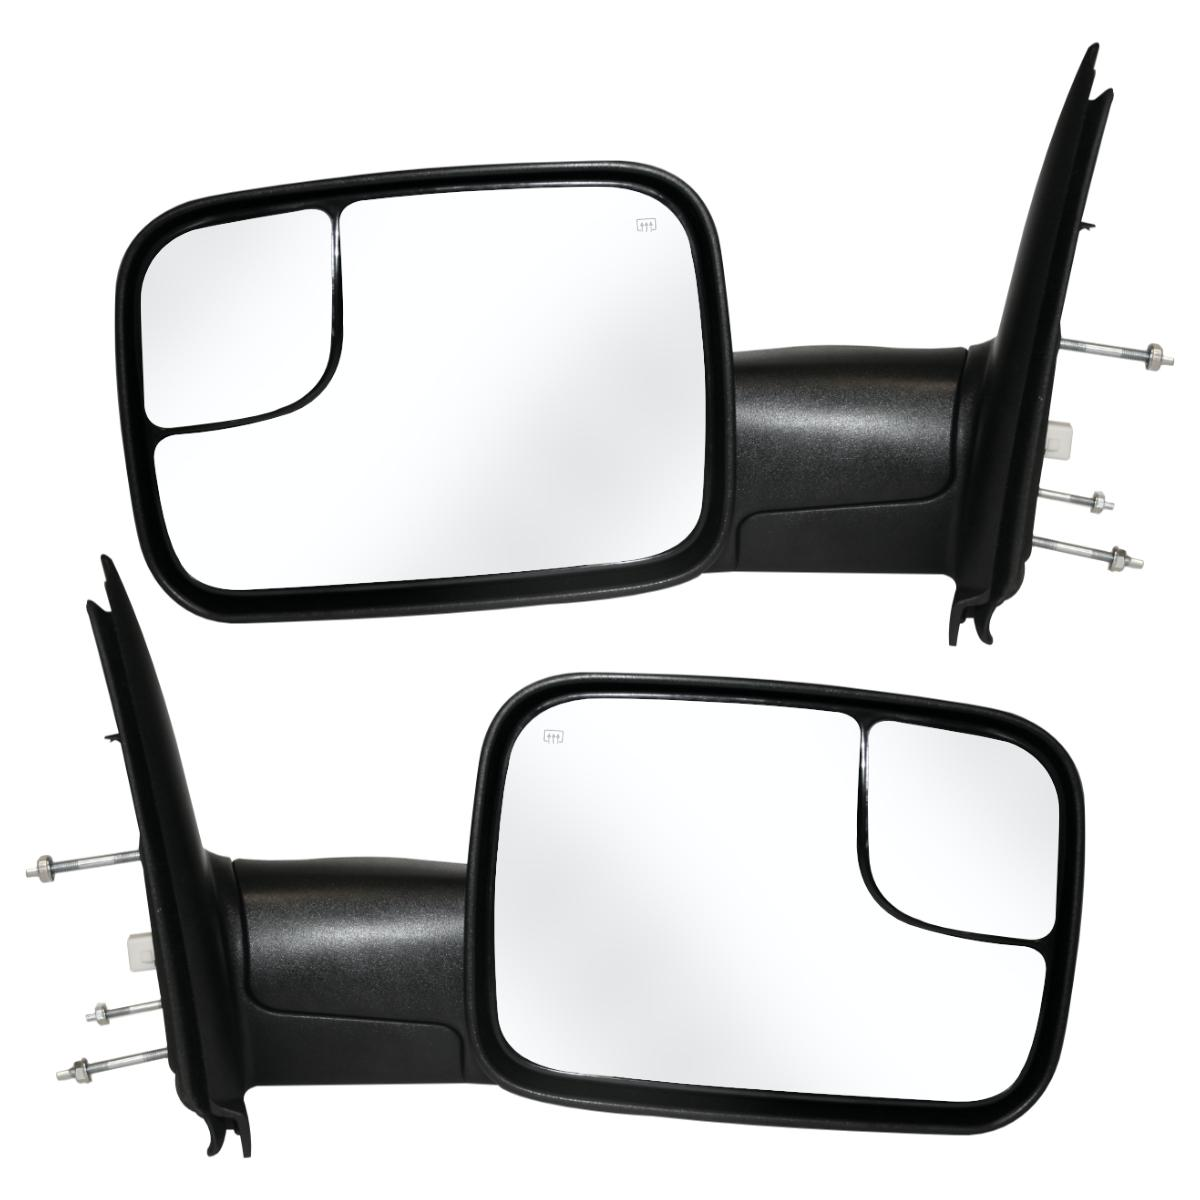 Prime Choice Auto Parts KAPHY1321149 Power Heated Passengers Side View Mirror